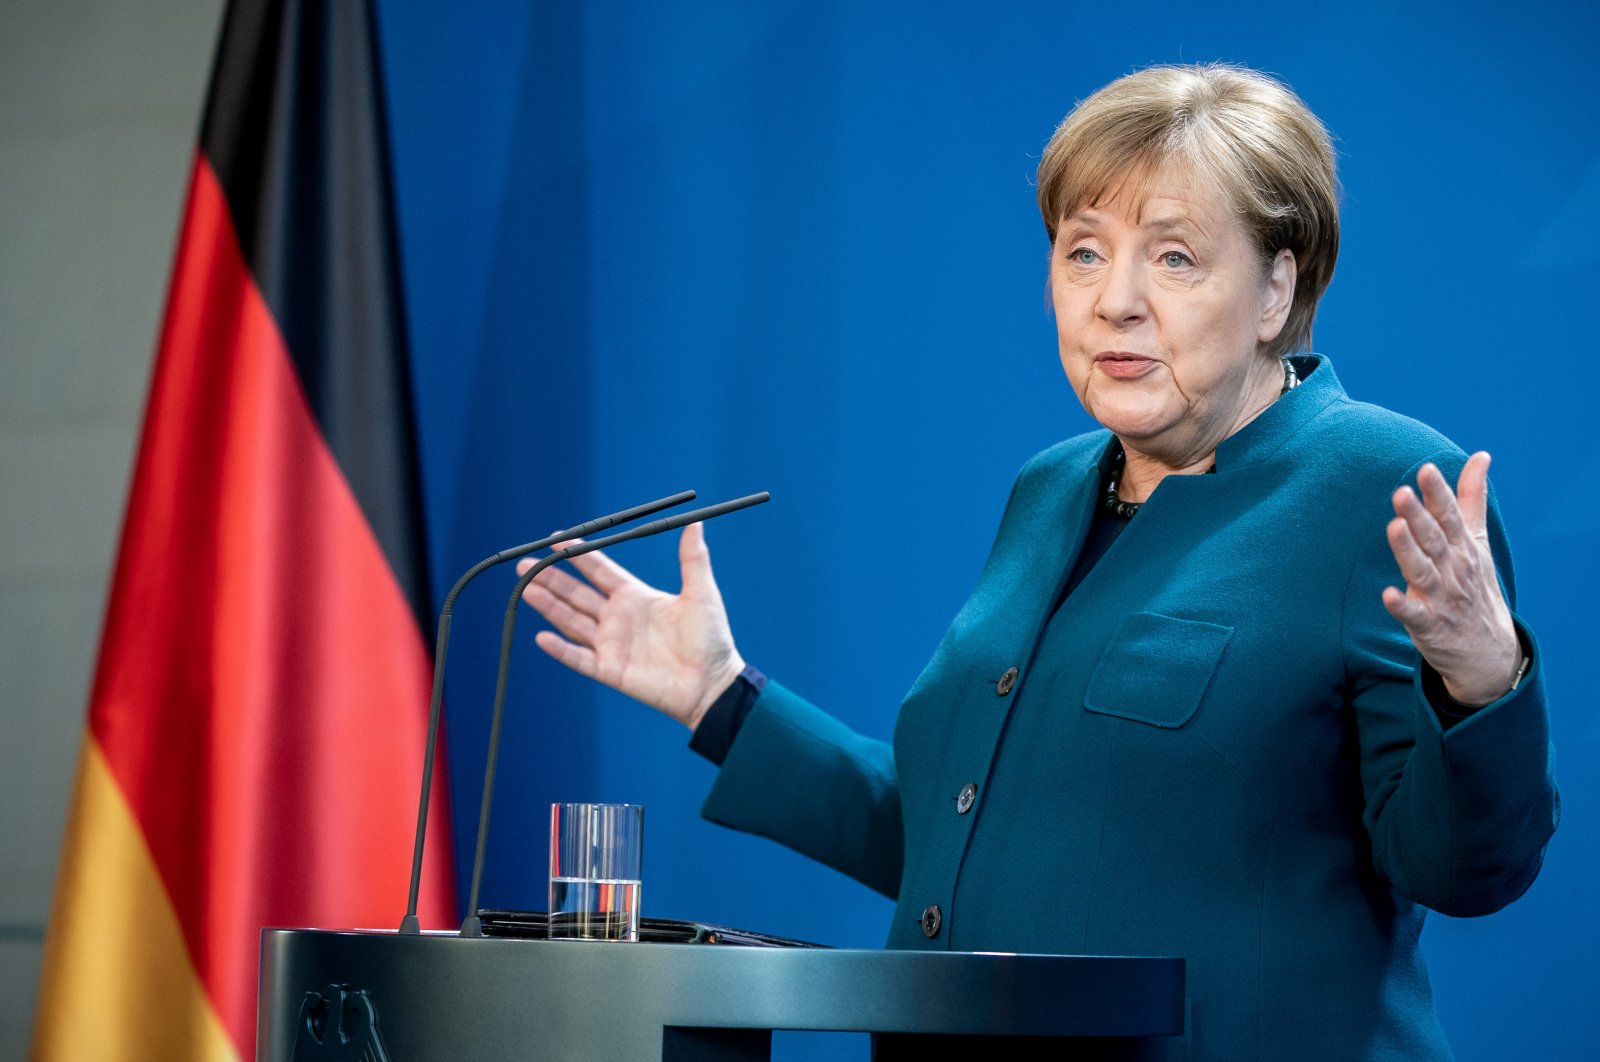 German Chancellor Angela Merkel gives a statement to the media on the spread of the coronavirus at the Chancellery, Berlin, Germany, March 22, 2020. (Reuters Photo)